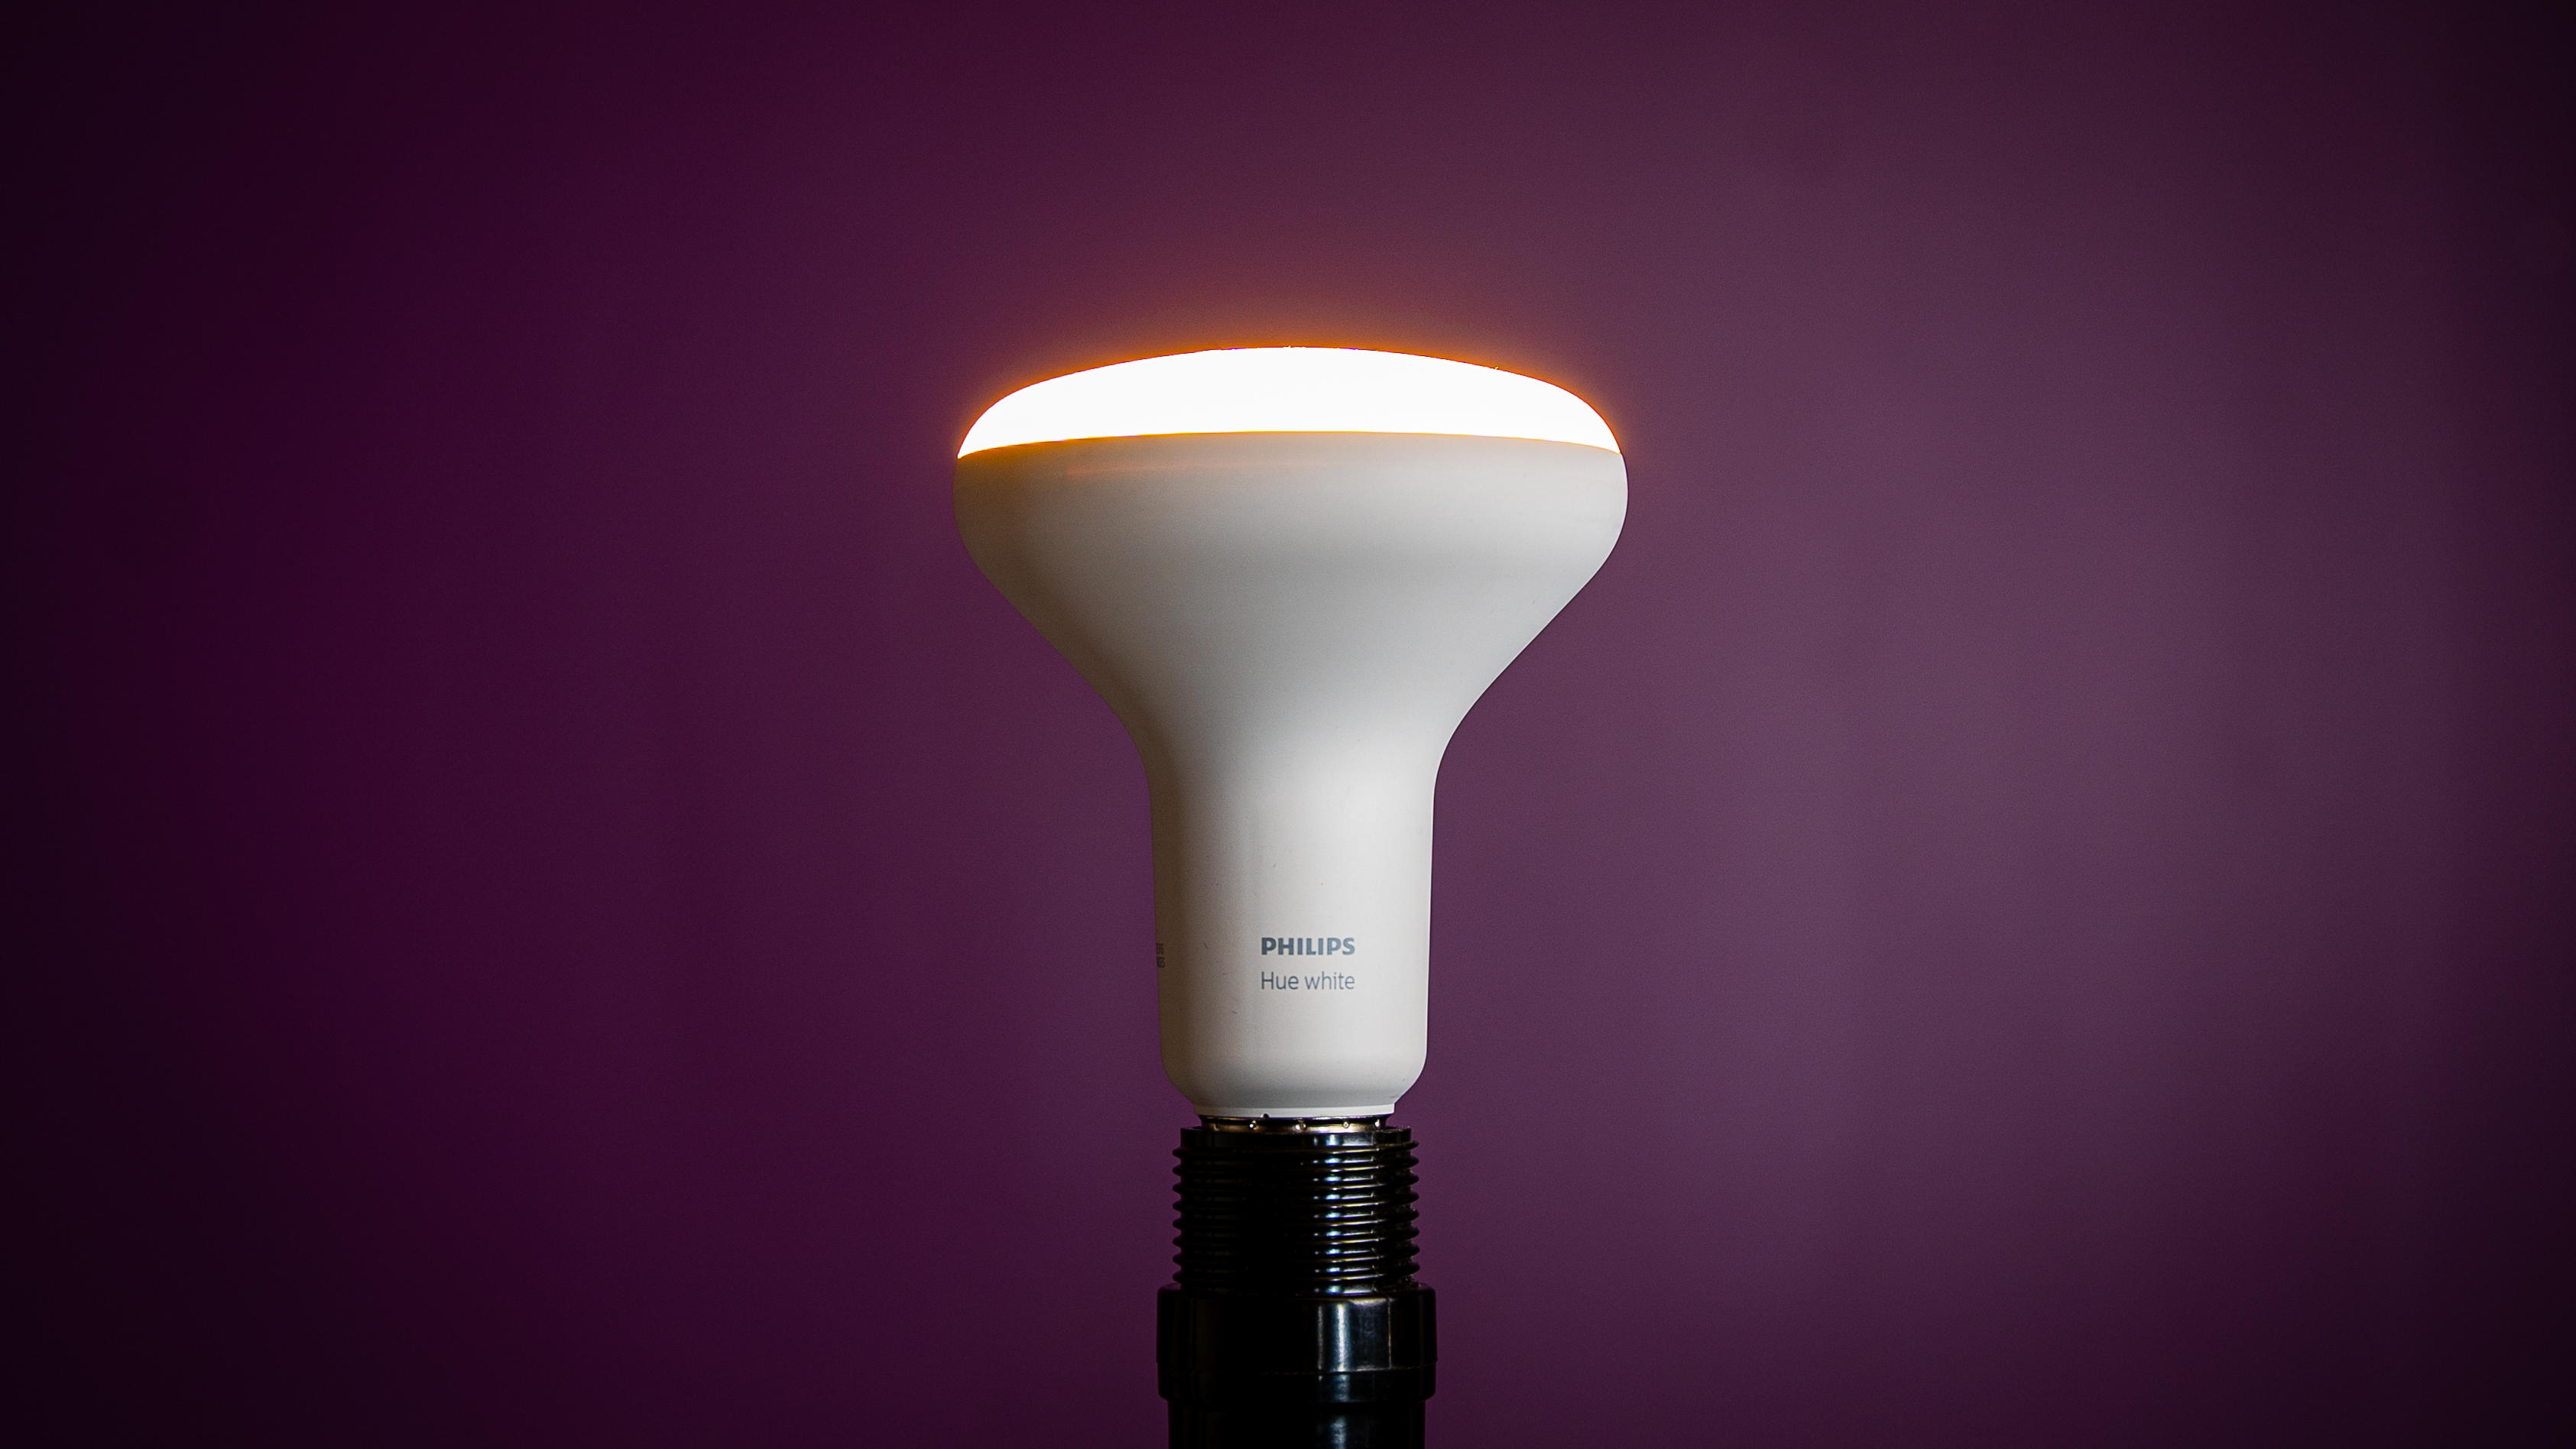 Philips Hue launches redesigned smart light app. Here's how to find all the  new features - CNET